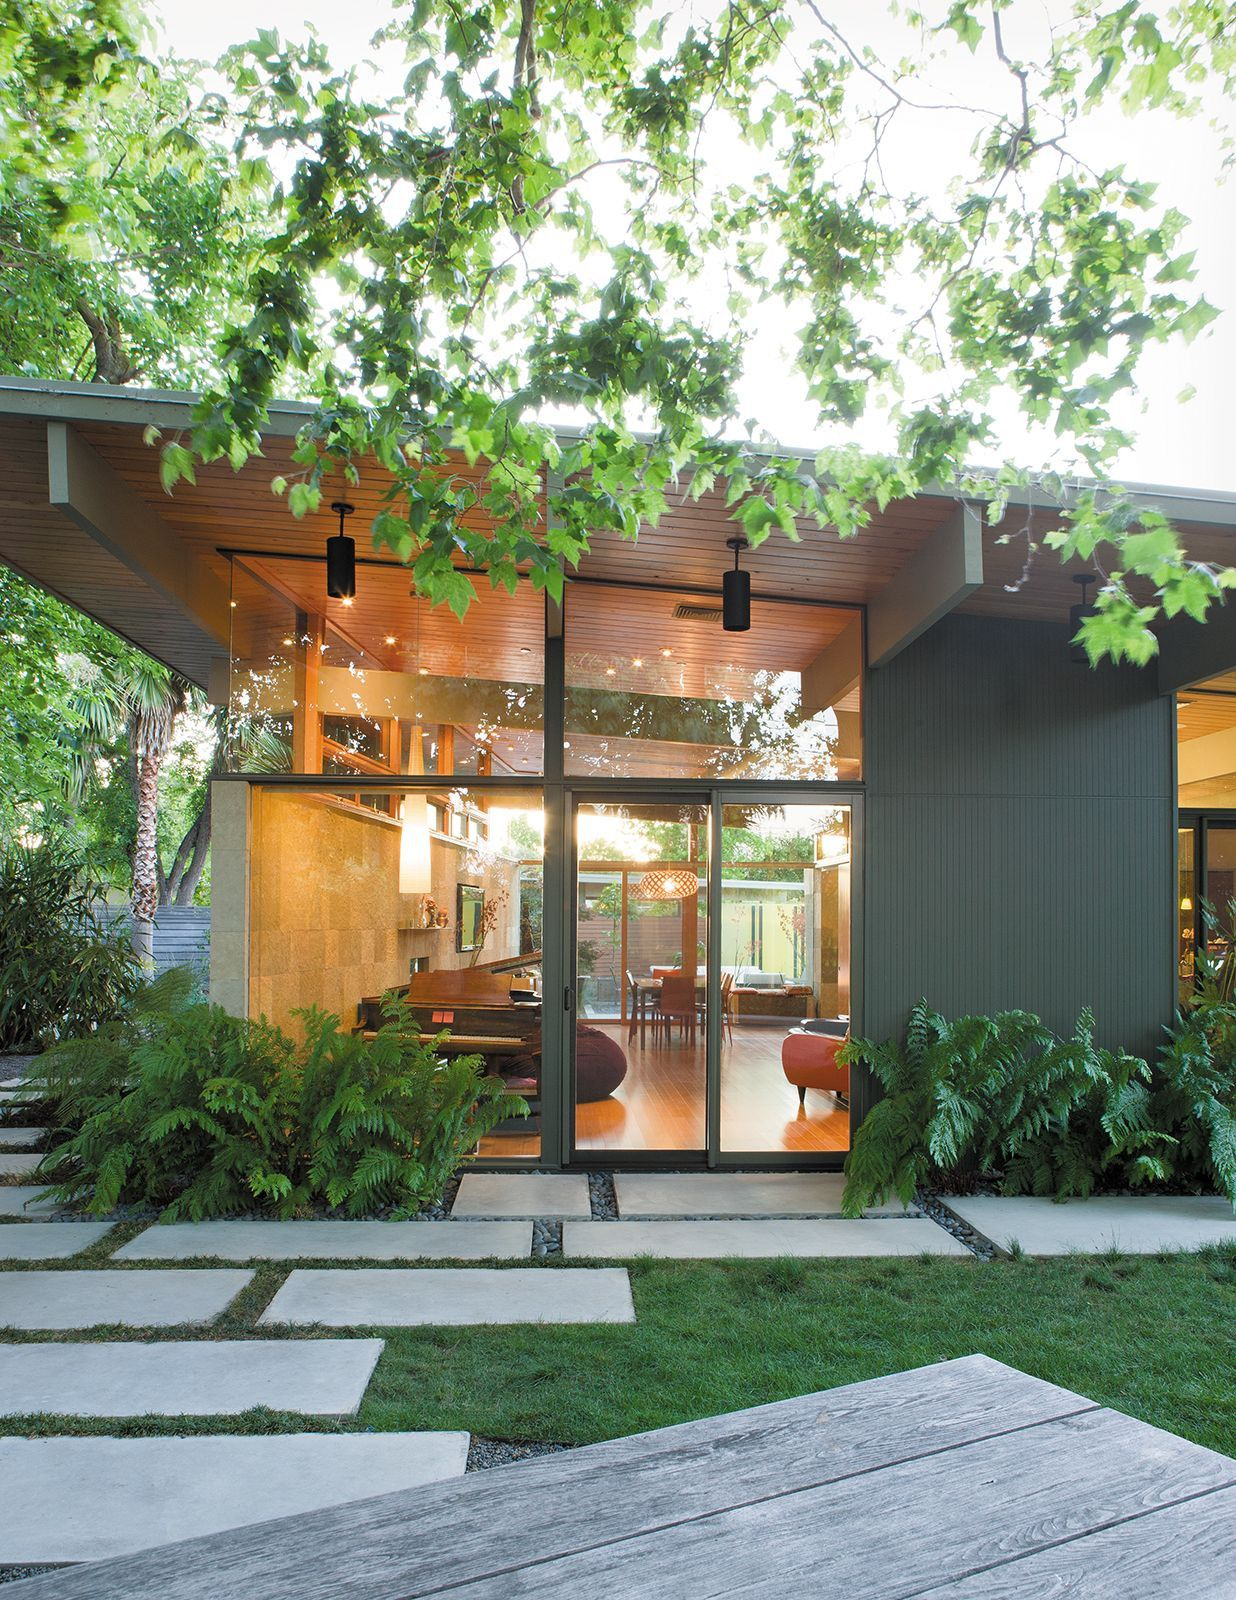 Articles about creative landscape design renovated eichler california on dwell also rh pinterest